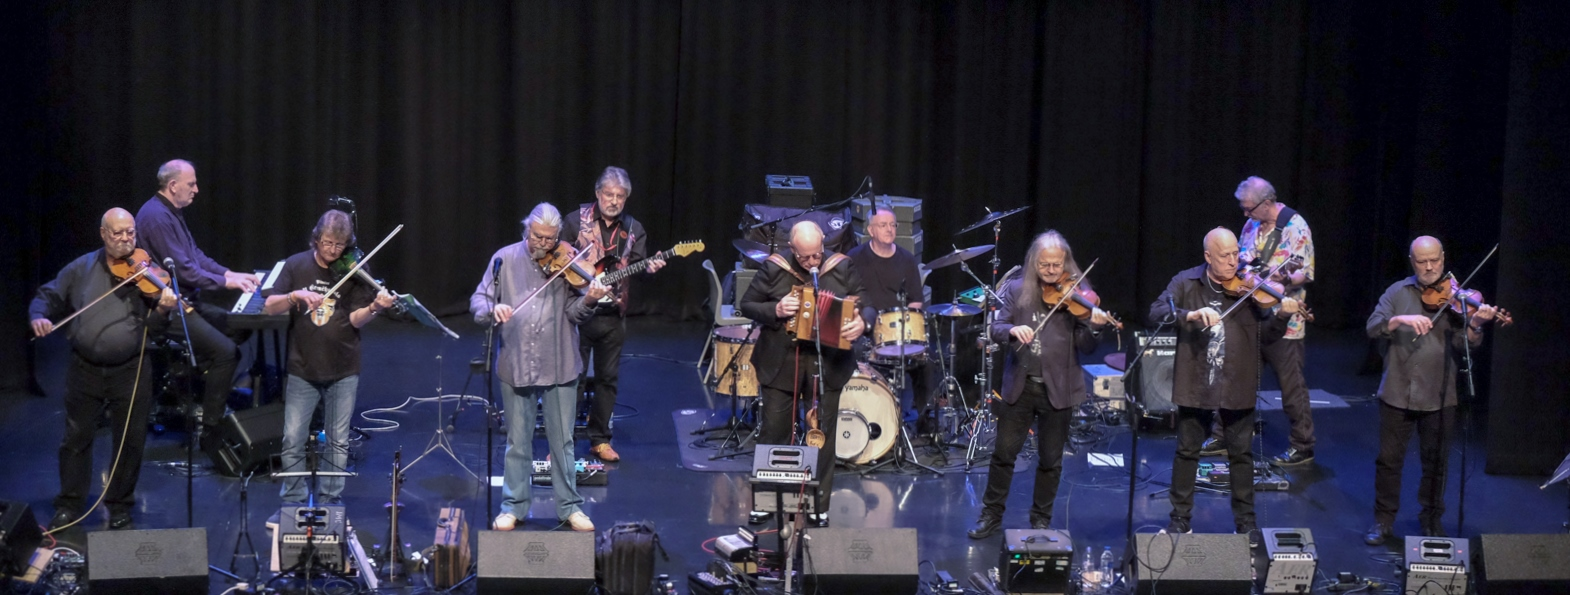 Feast of Fiddles Silver Jubilee Tour Comes to Nettlebed Folk Club  Monday & Tuesday